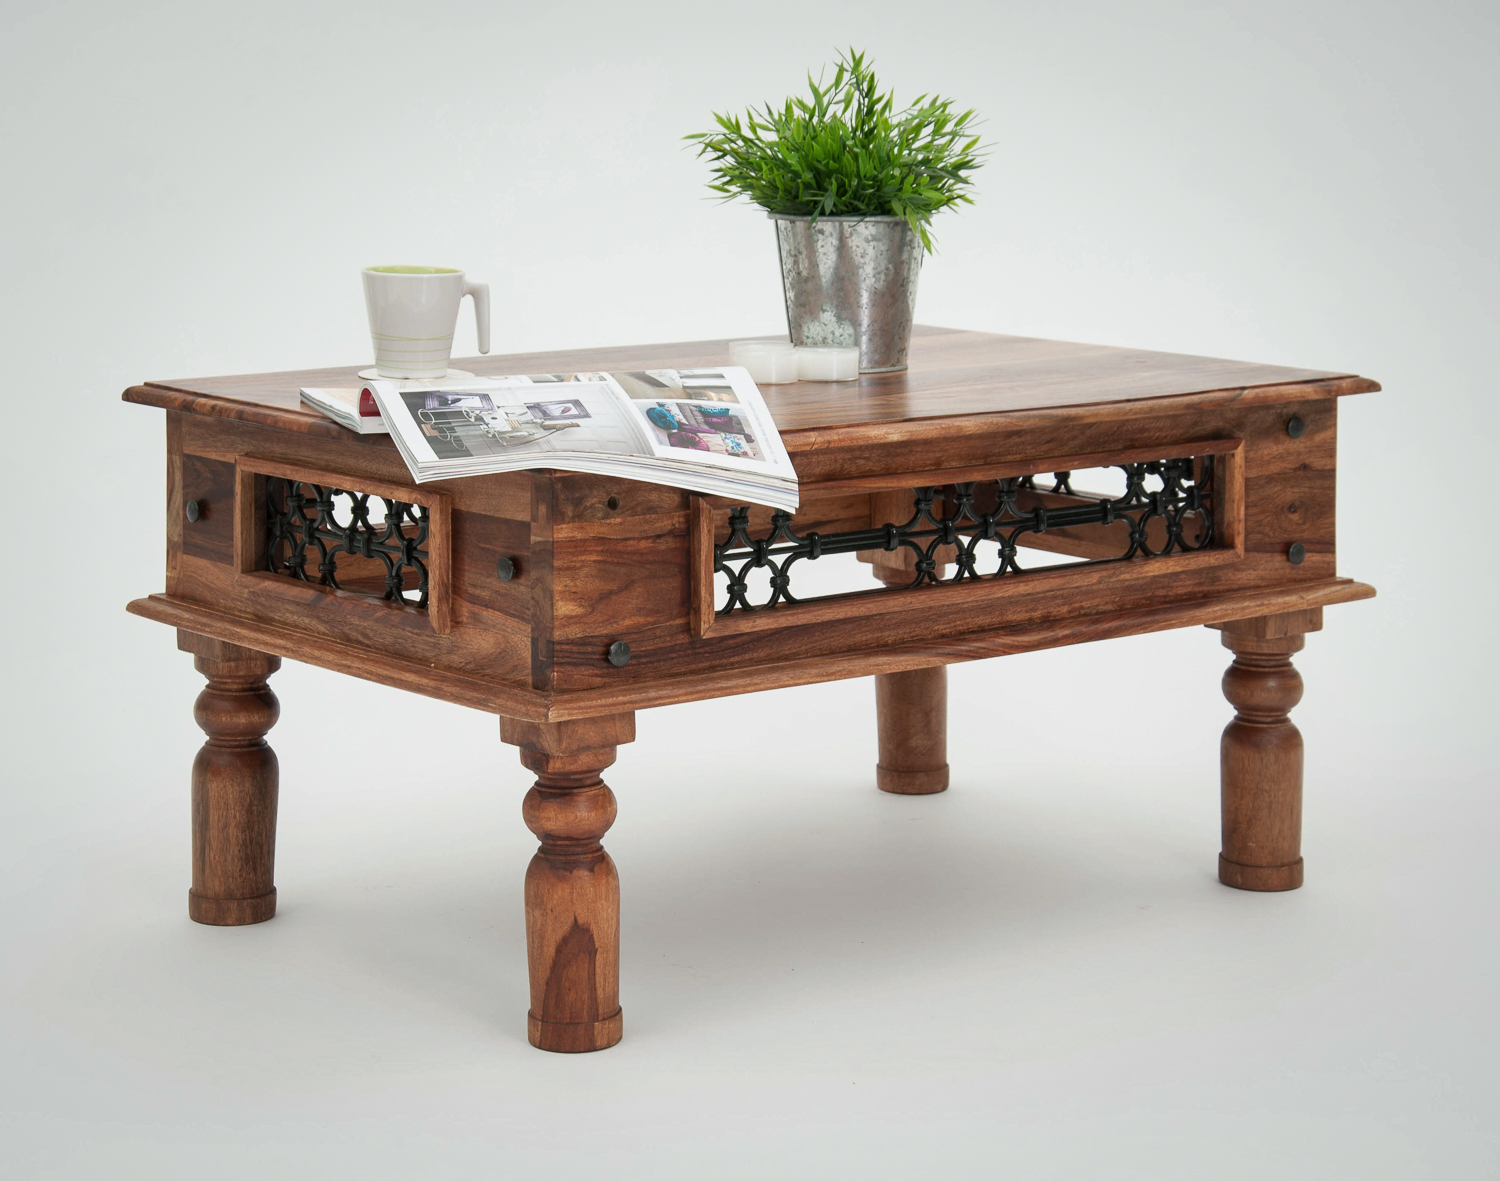 Jali Coffee Table - Various Sizes  (Jali Coffee Table 1 - 60 x 60 x 46cm)